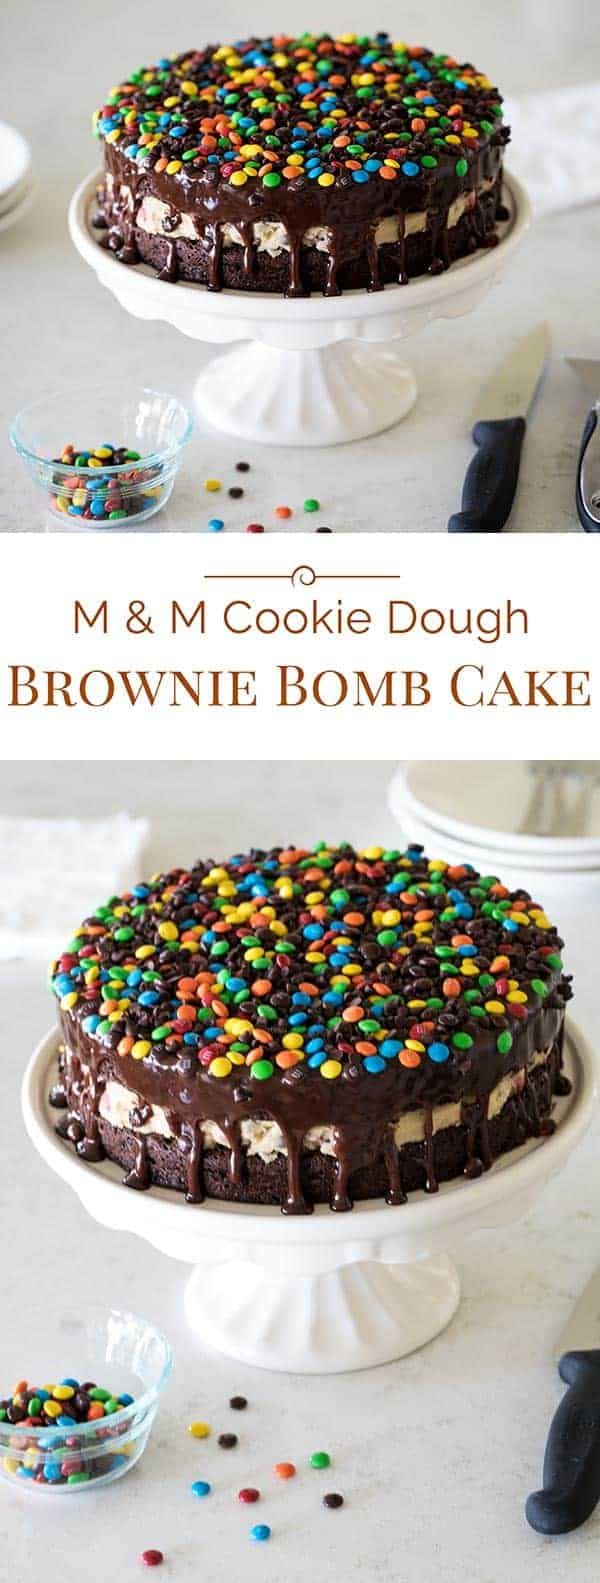 M-and-M-Cookie-Dough-Brownie-Cake-Collage